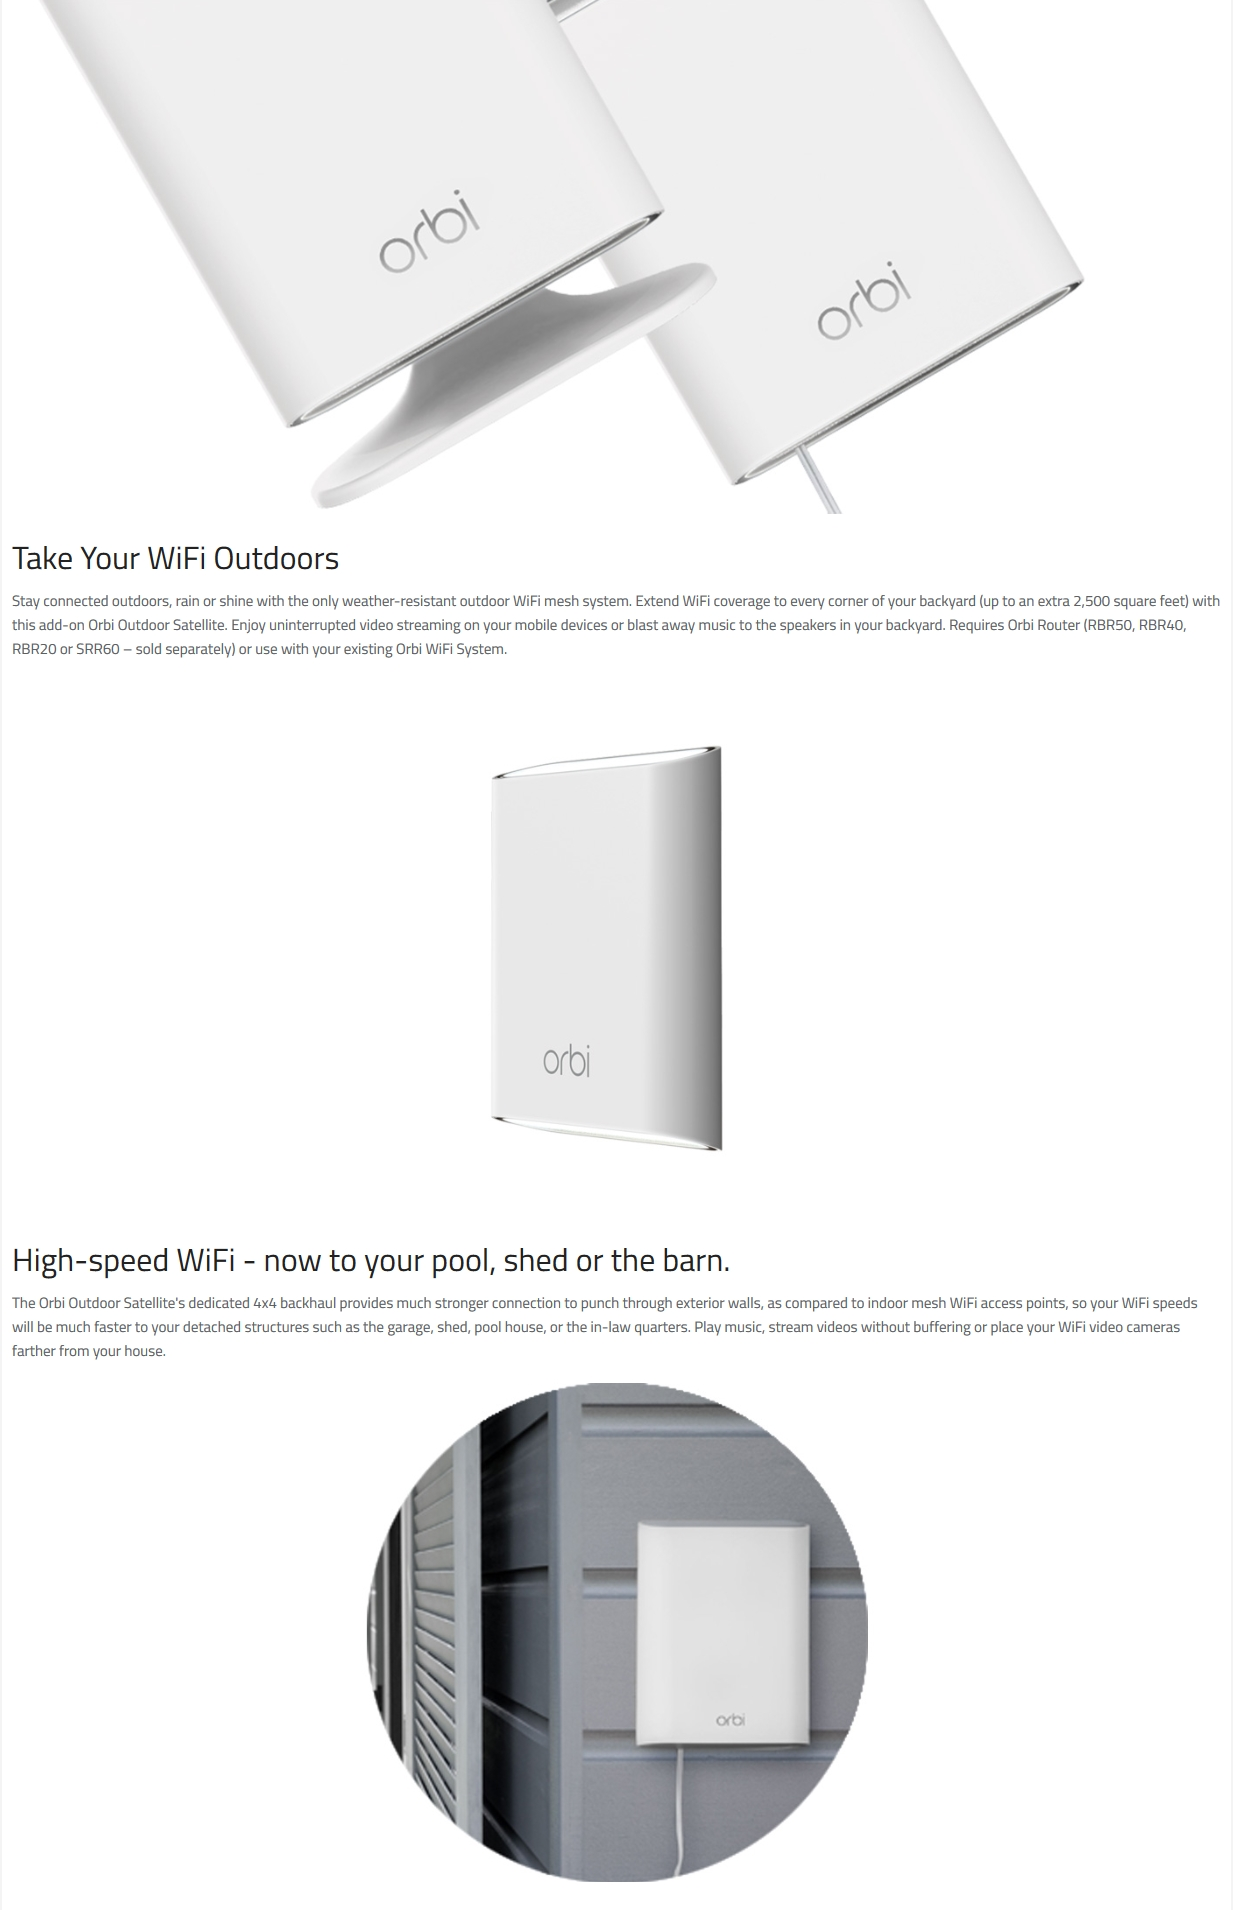 Details about Netgear Orbi Outdoor AC3000 WiFi Mesh Extender Add on  Satellite Only for Orbi